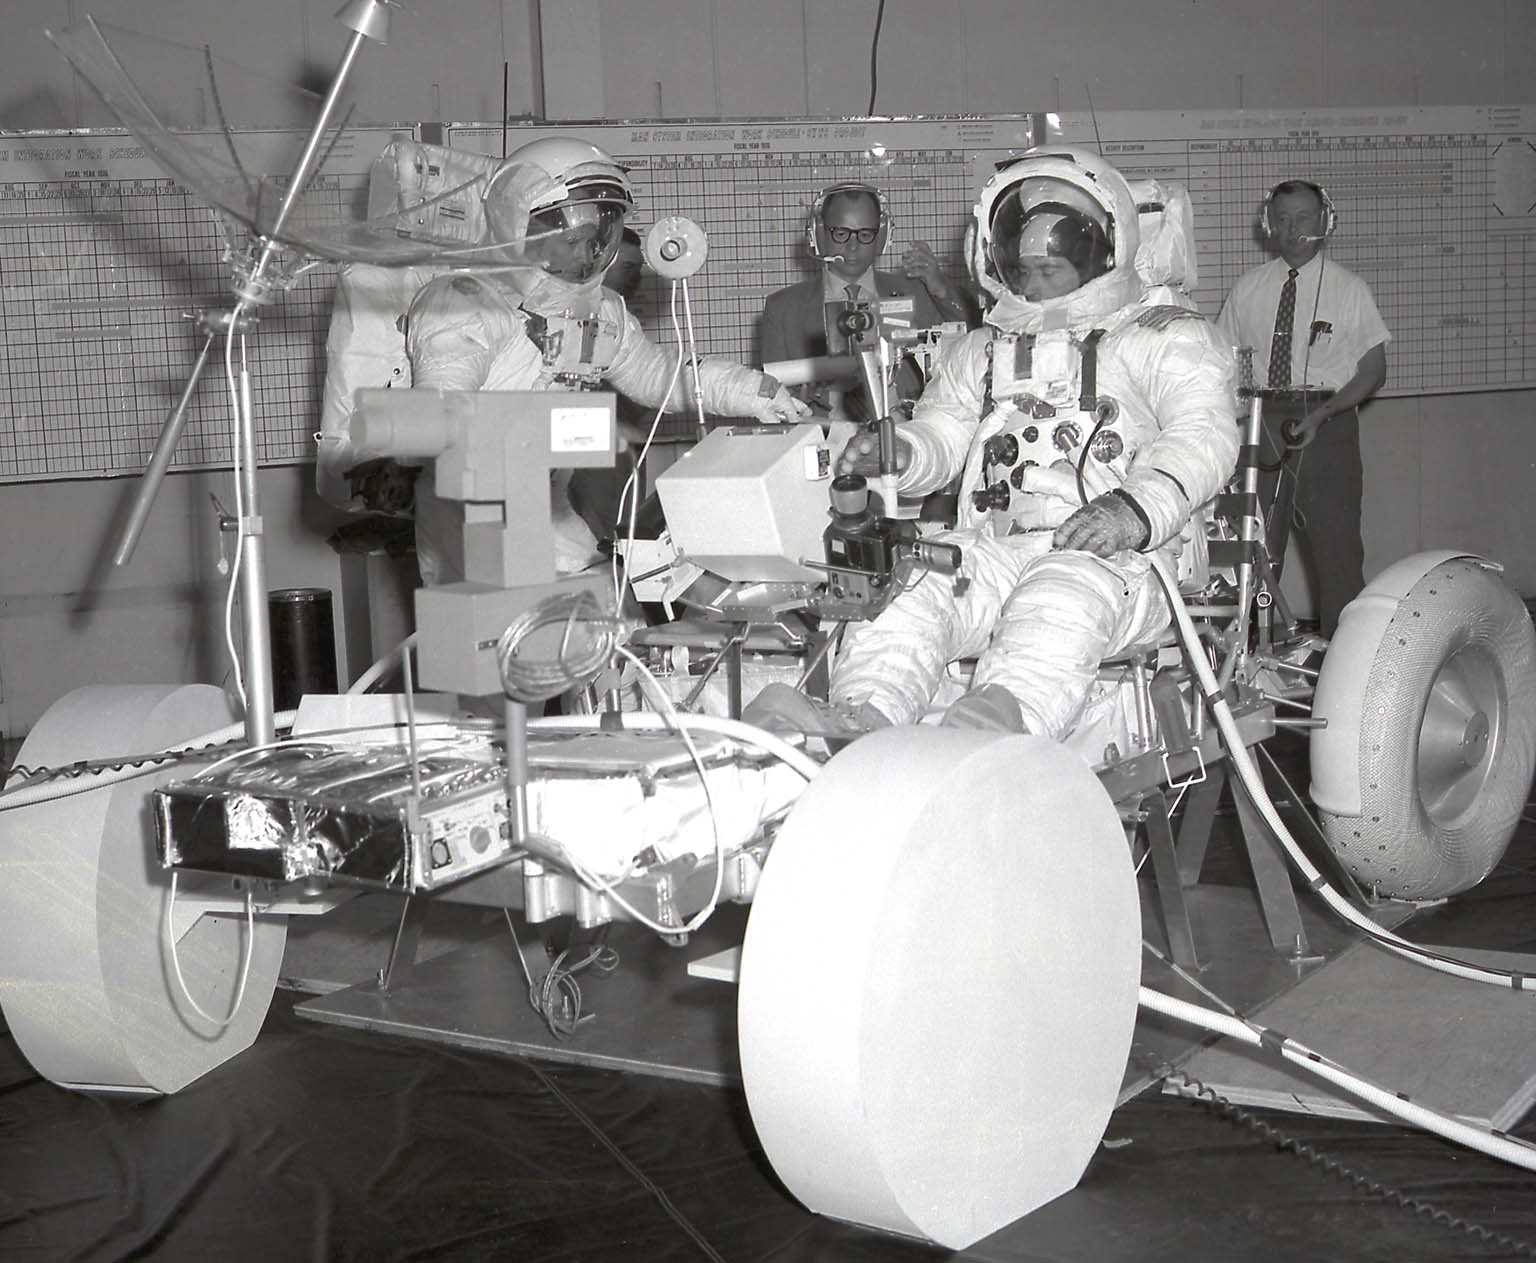 Astronauts Training on the Lunar Roving Vehicle